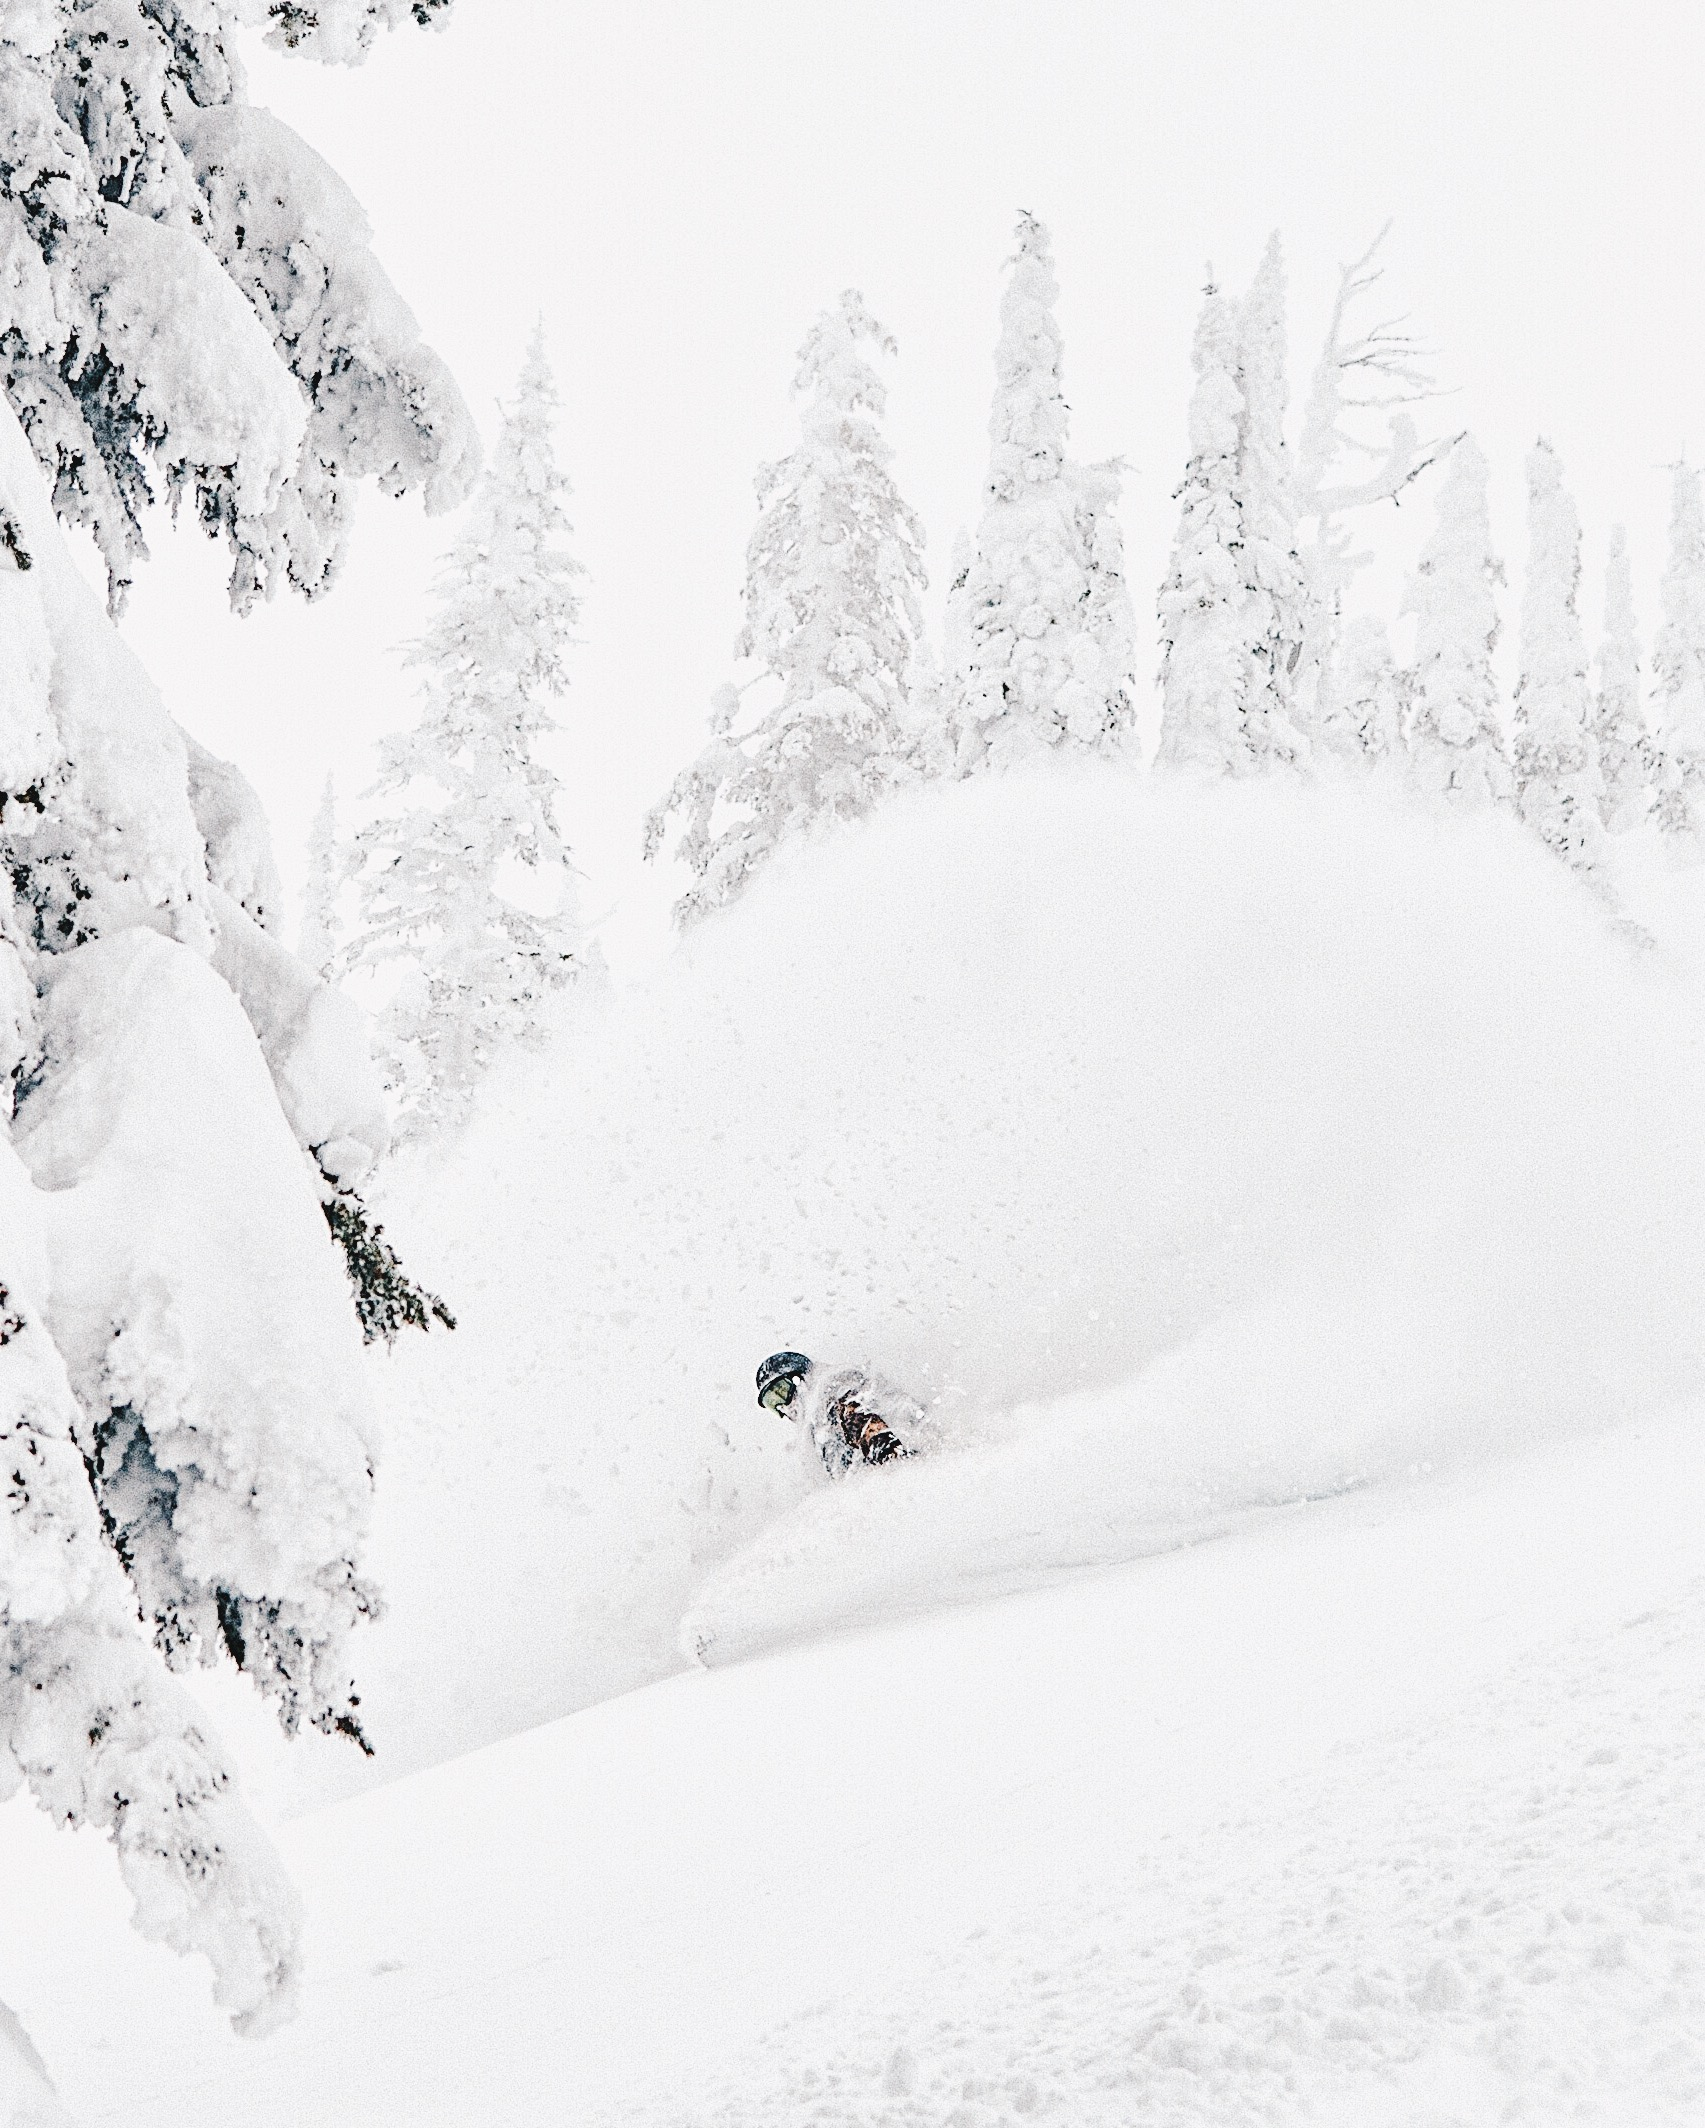 Baldface Lodge Snowboarding Nelson BC Jessika Hunter Photo.JPG